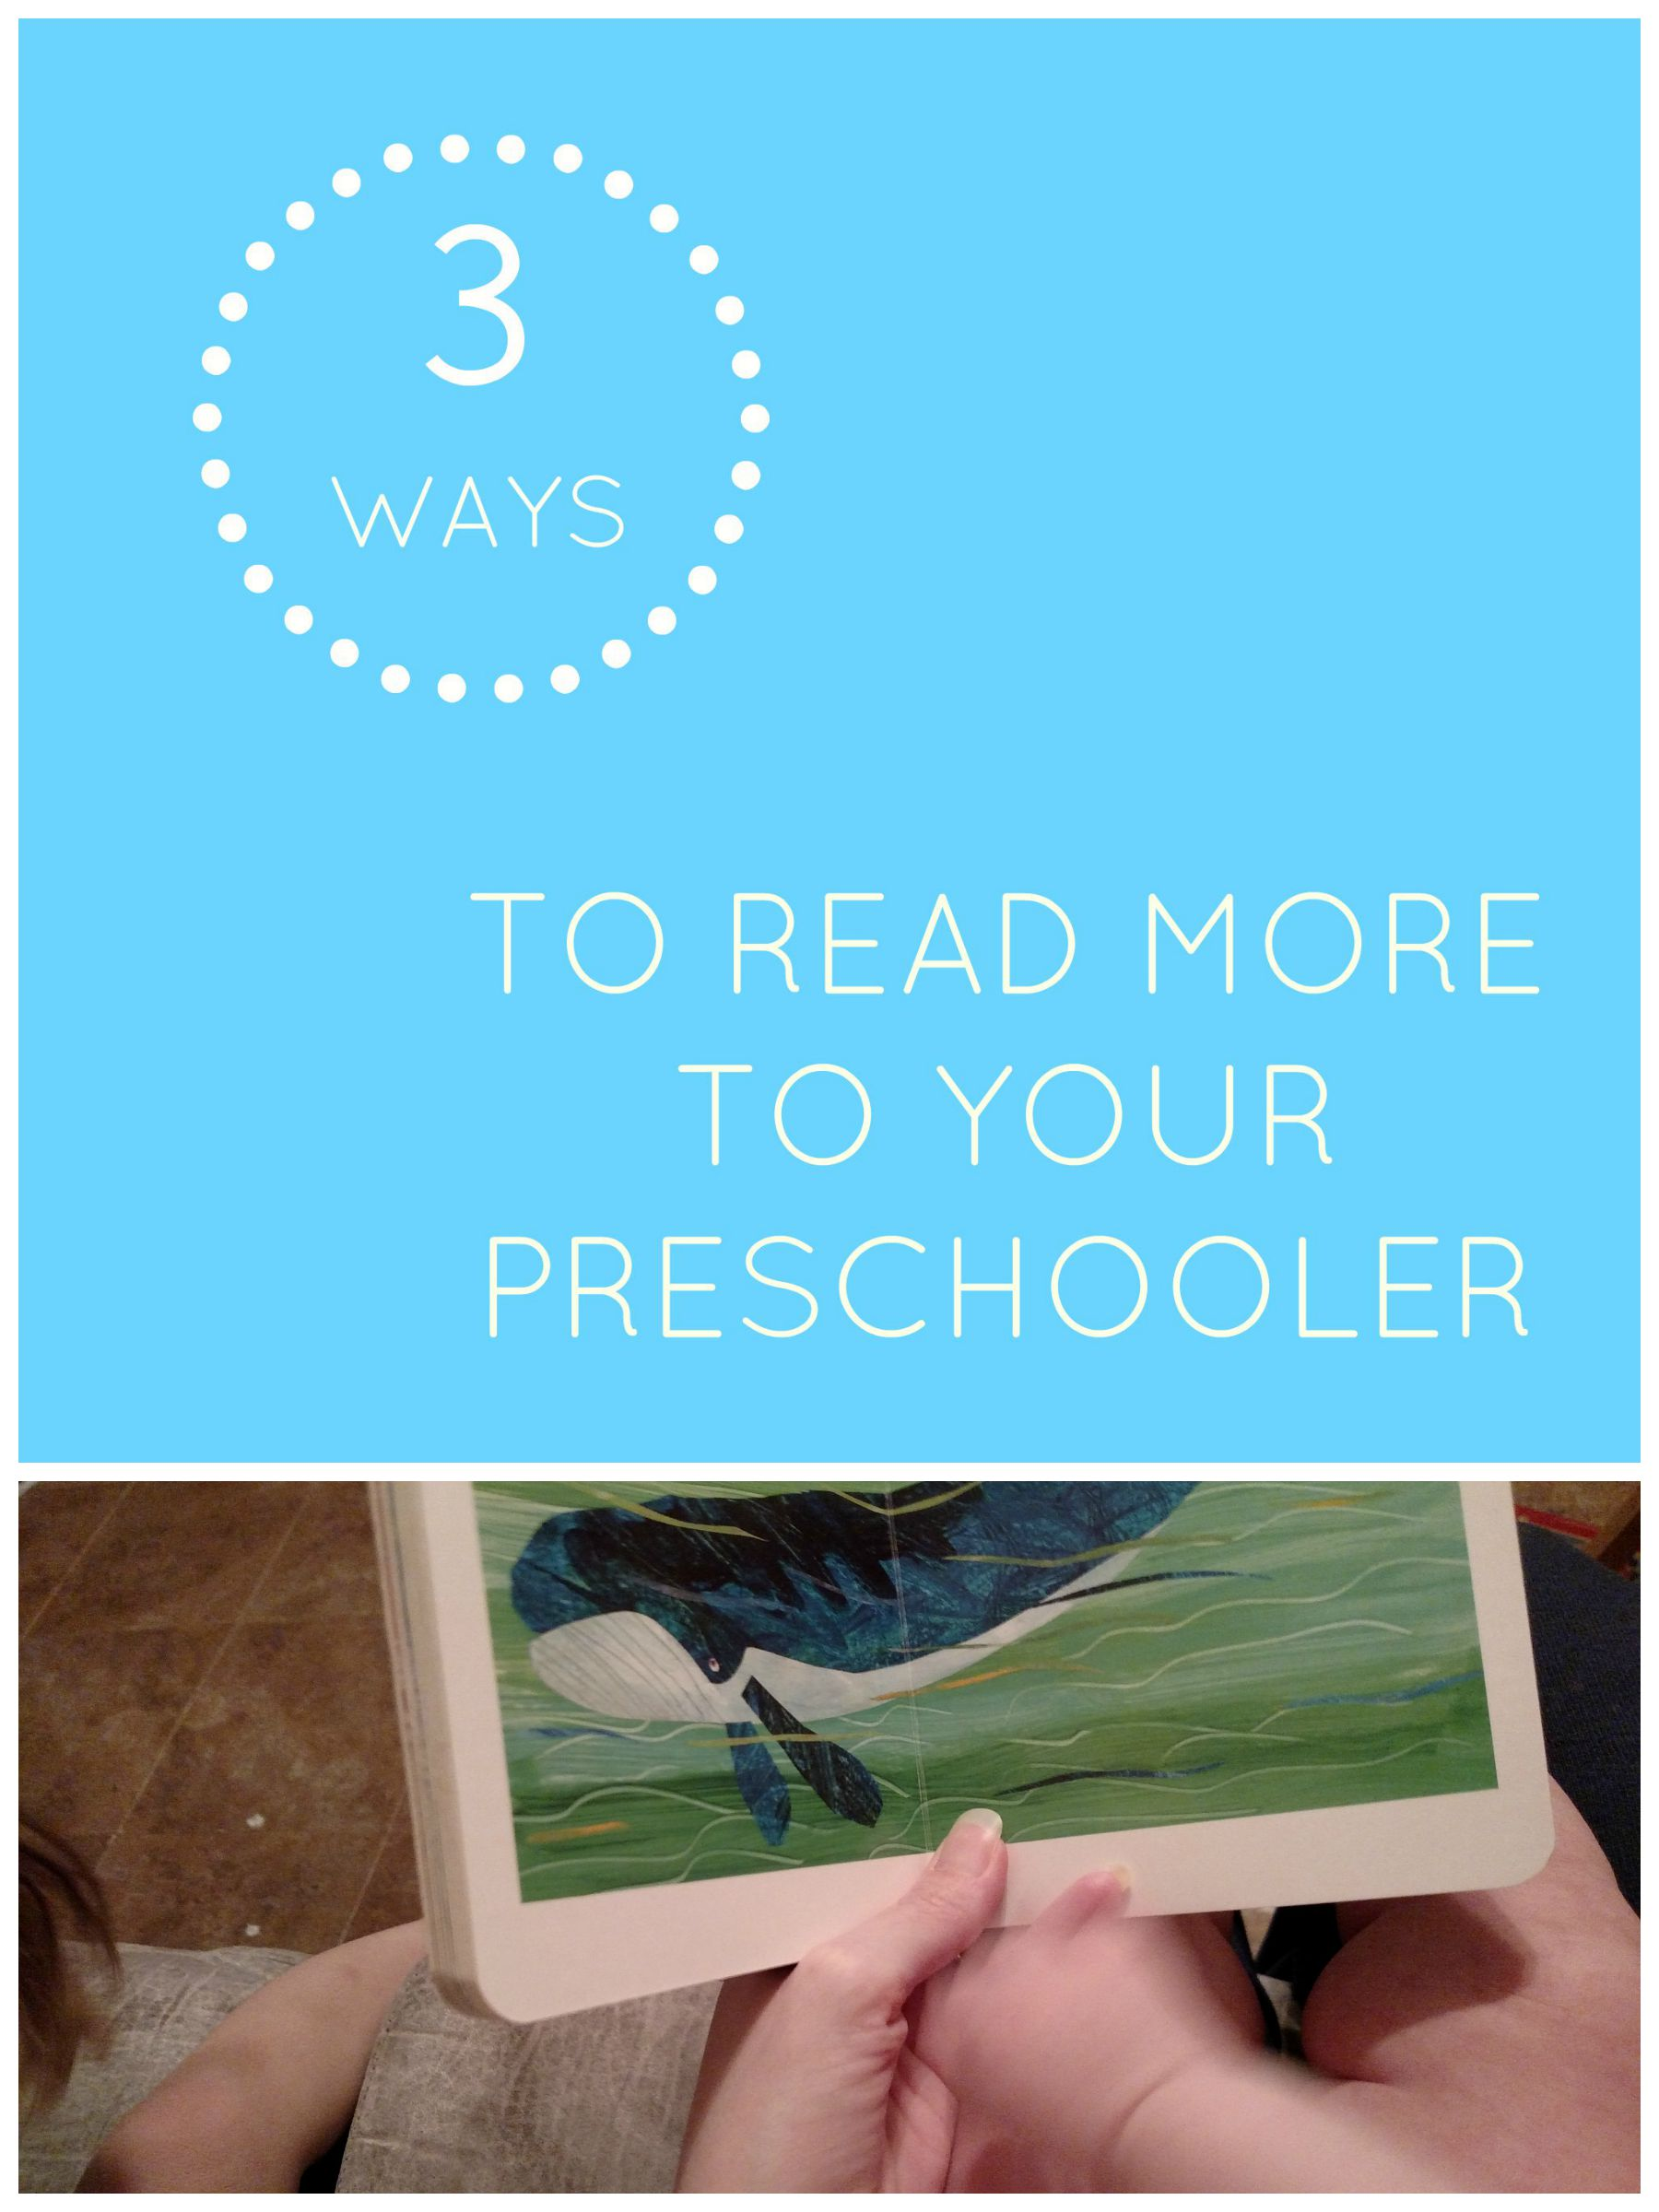 Three Ways to Read More to Your Preschooler